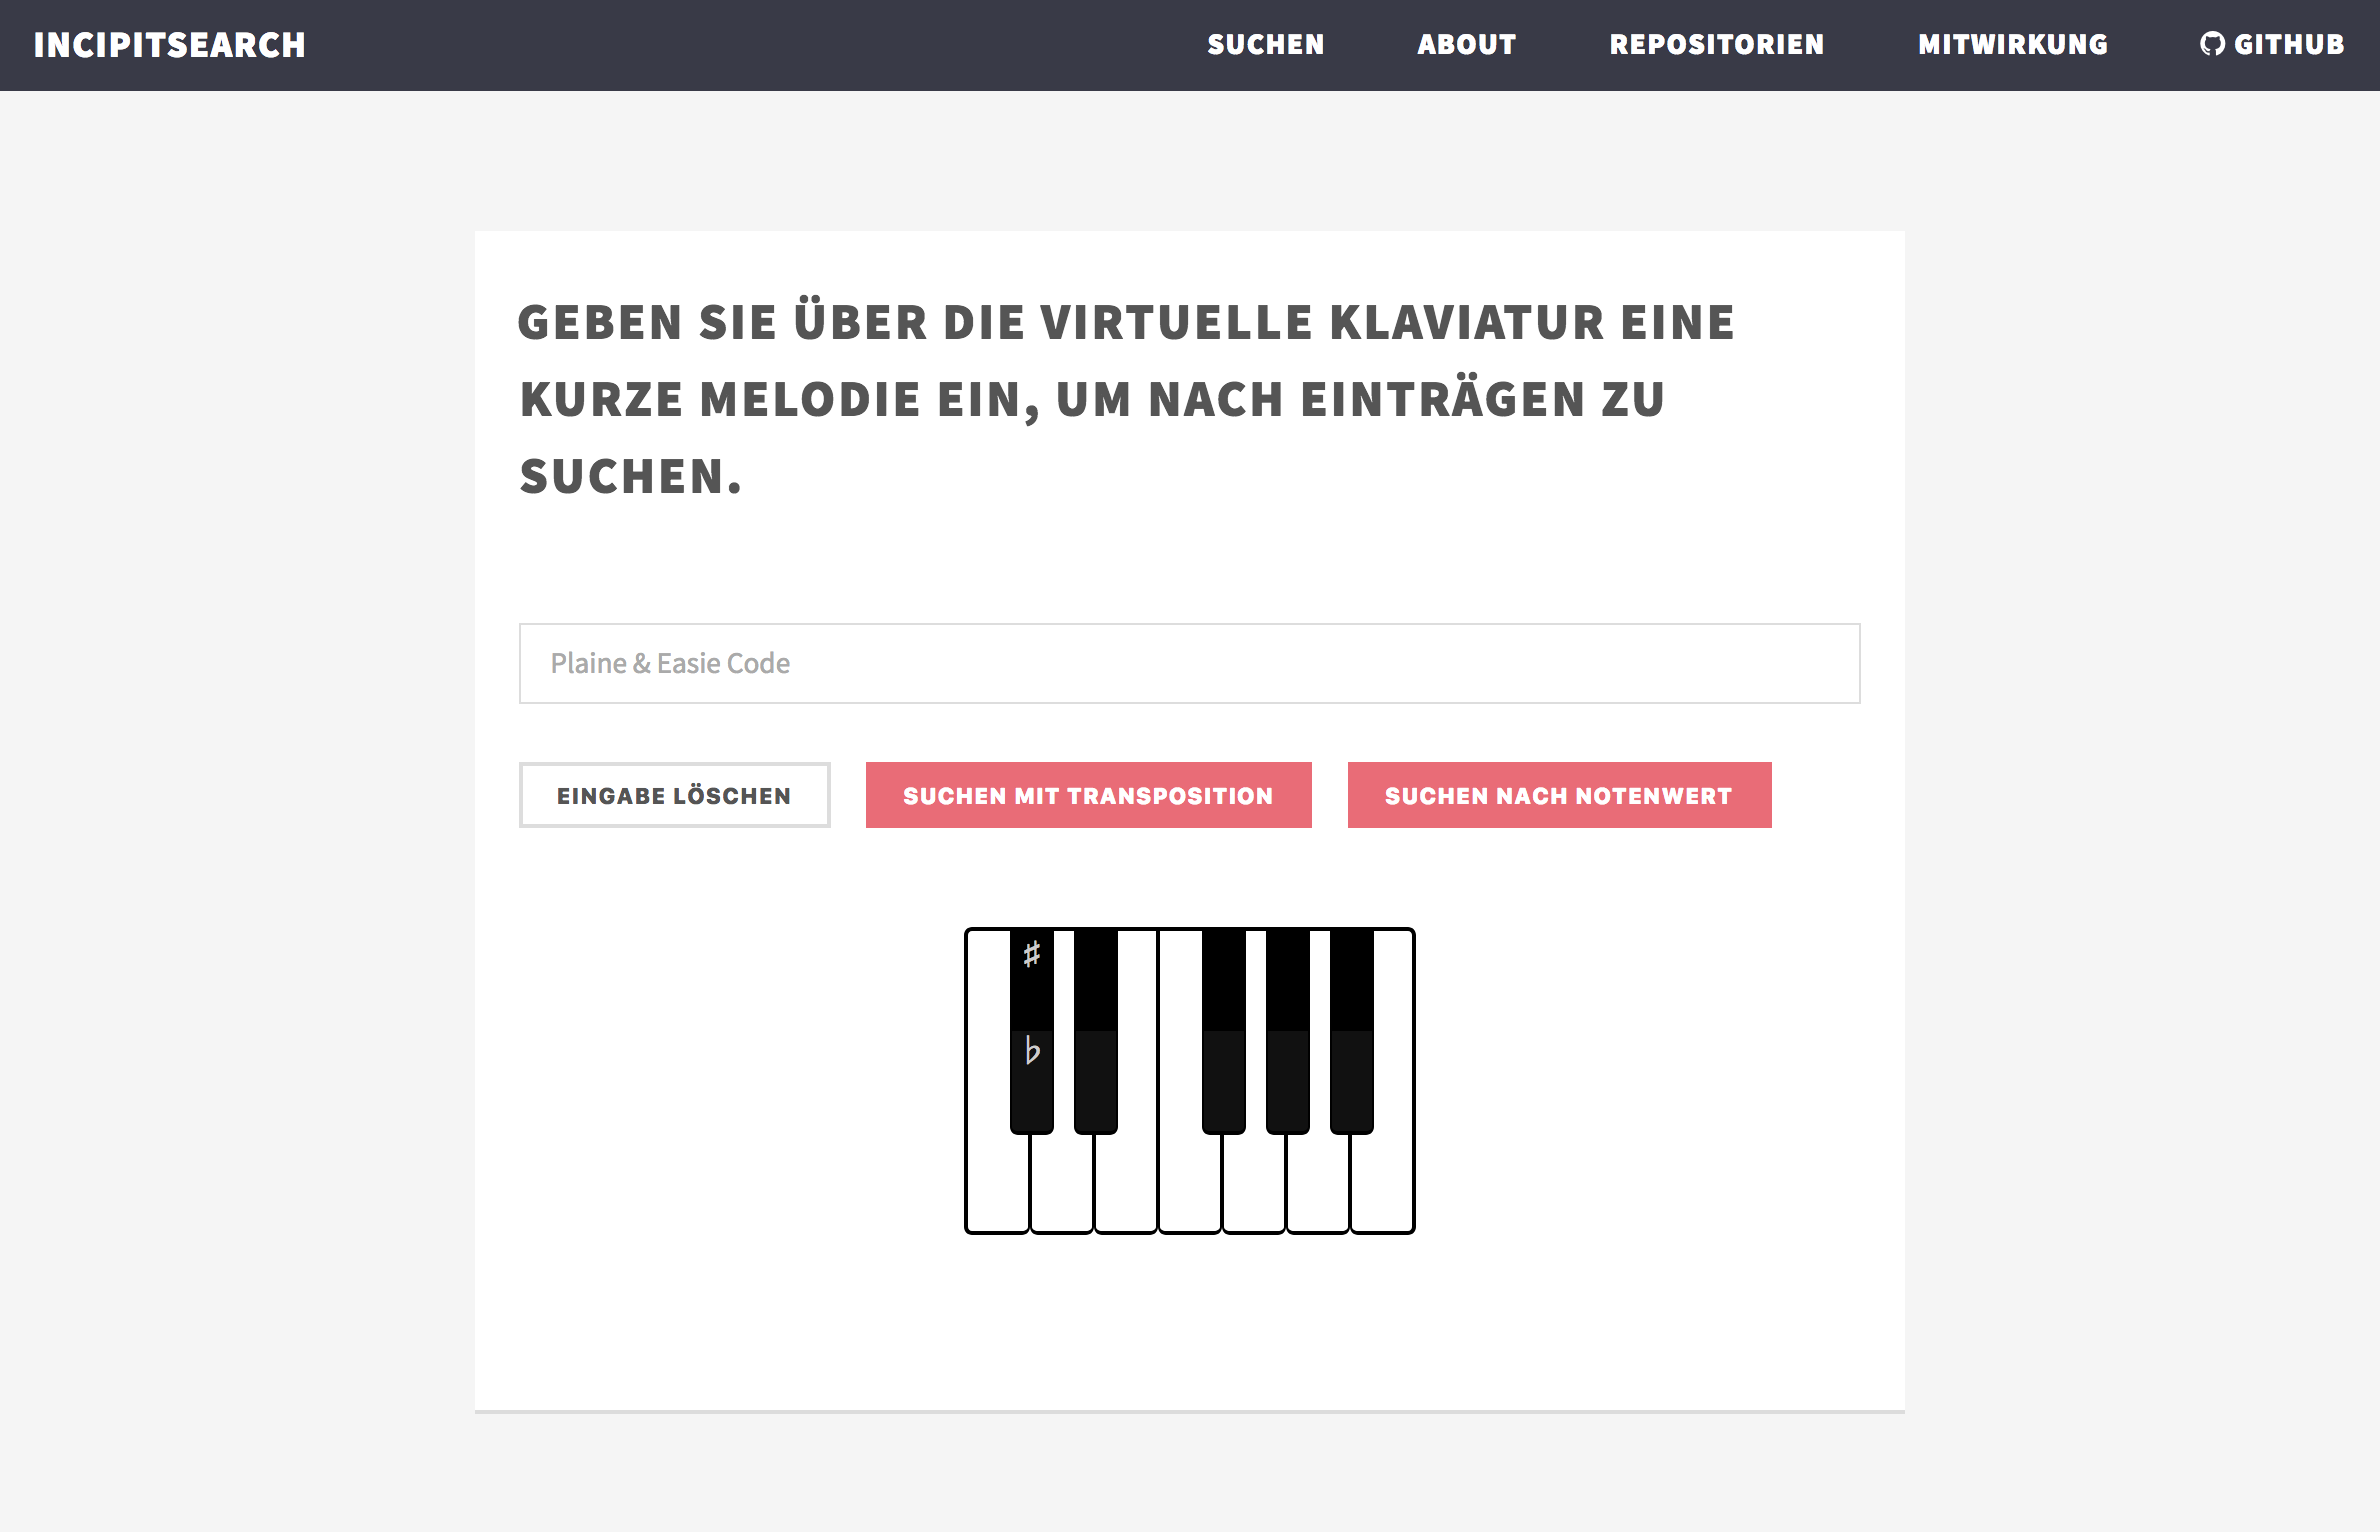 Screenshot of music incipit search engine and platform IncipitSearch